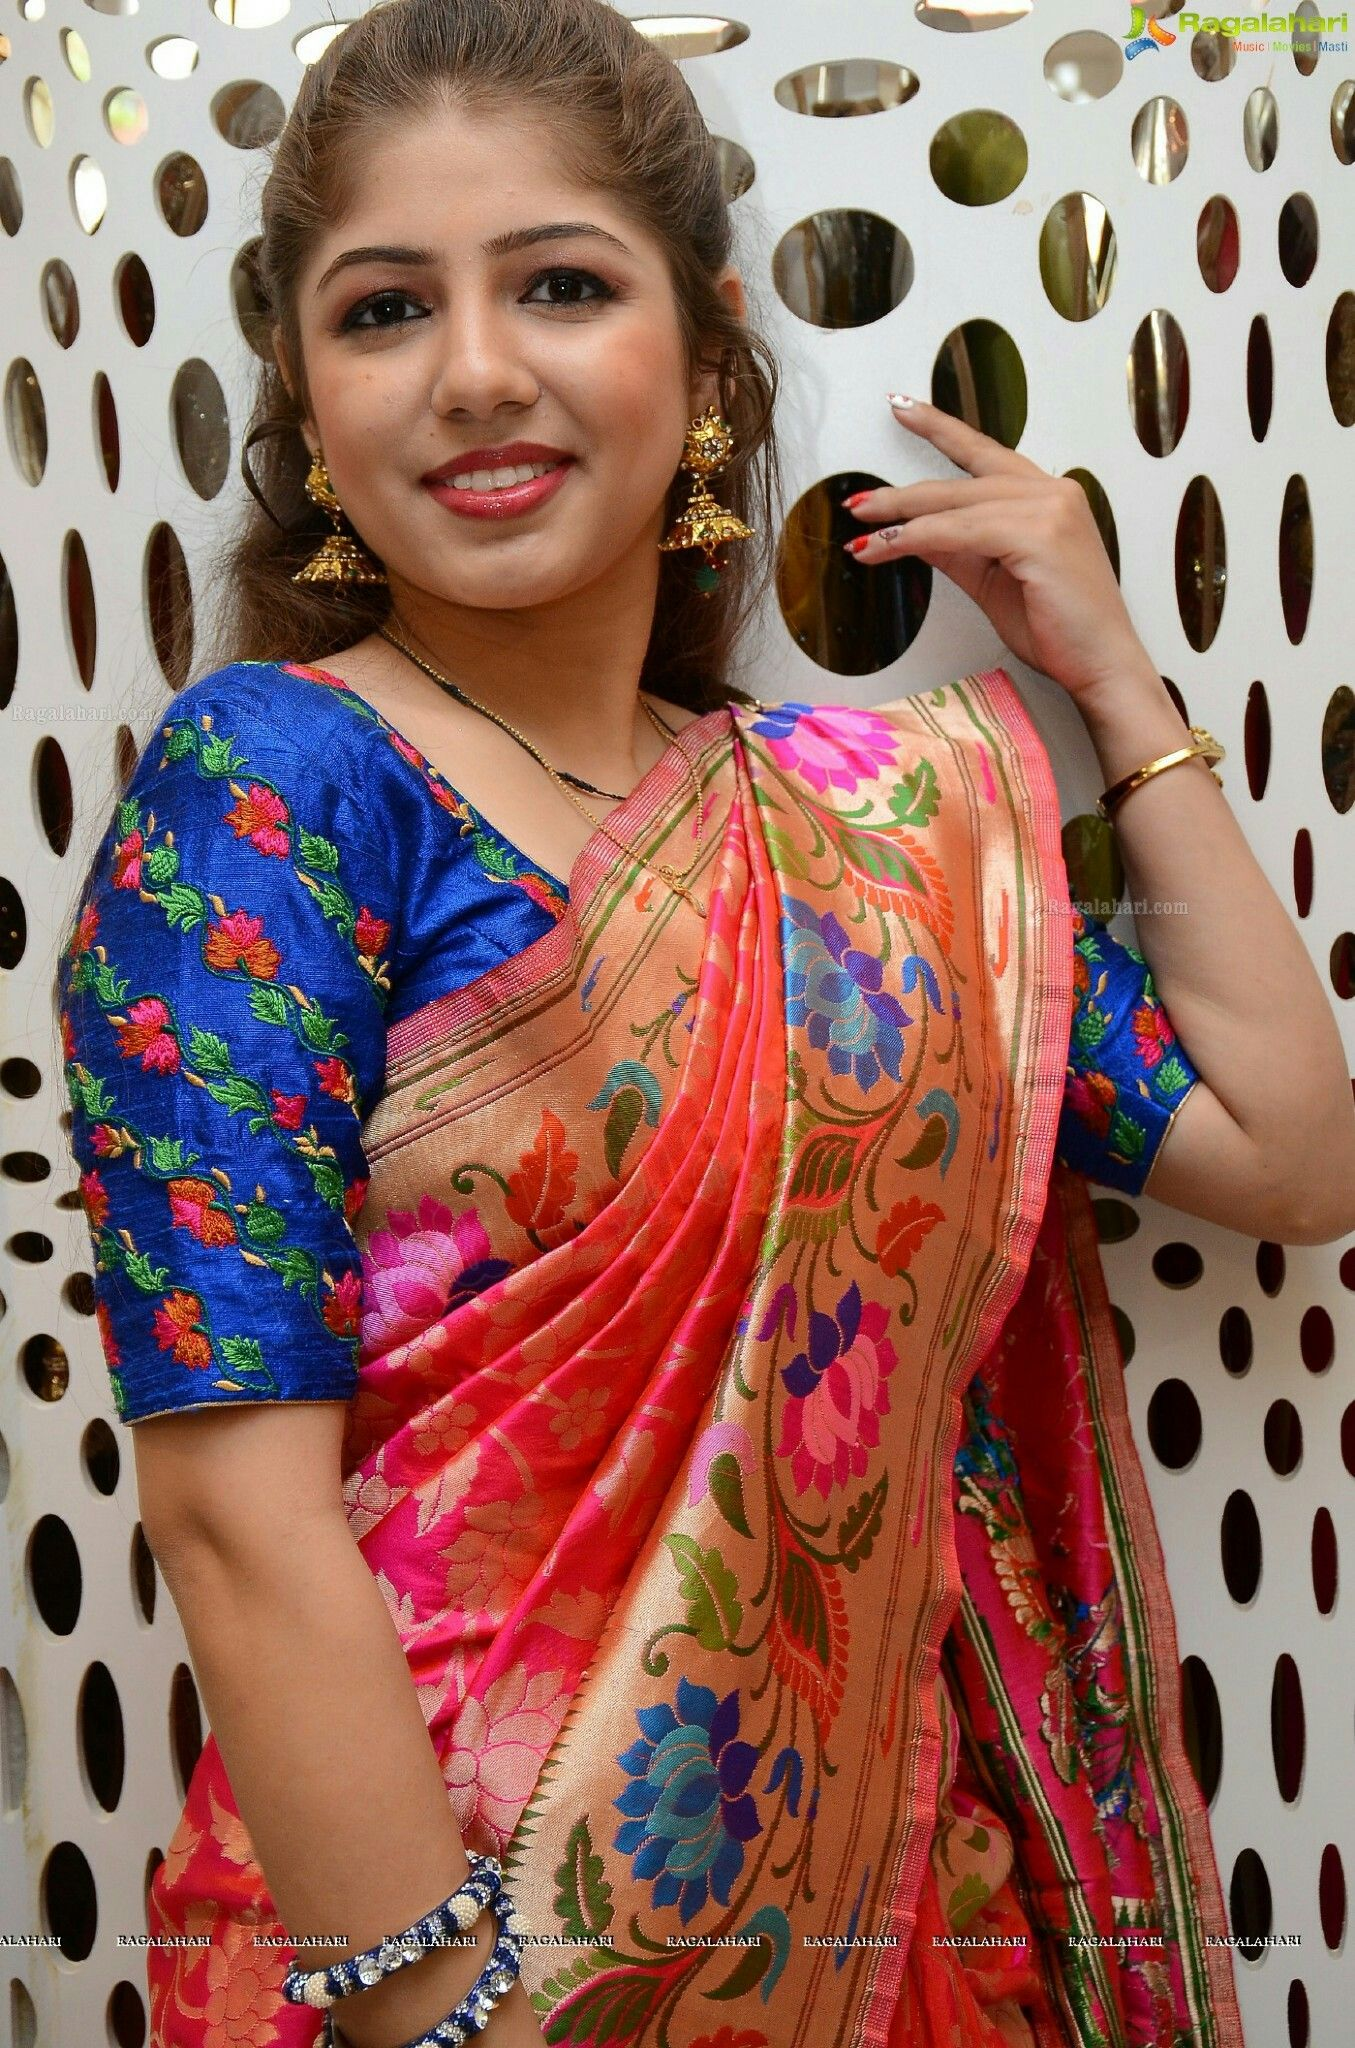 Saree blouse design sleeve pin by gowthami reddy on blouses  pinterest  blouse designs saree